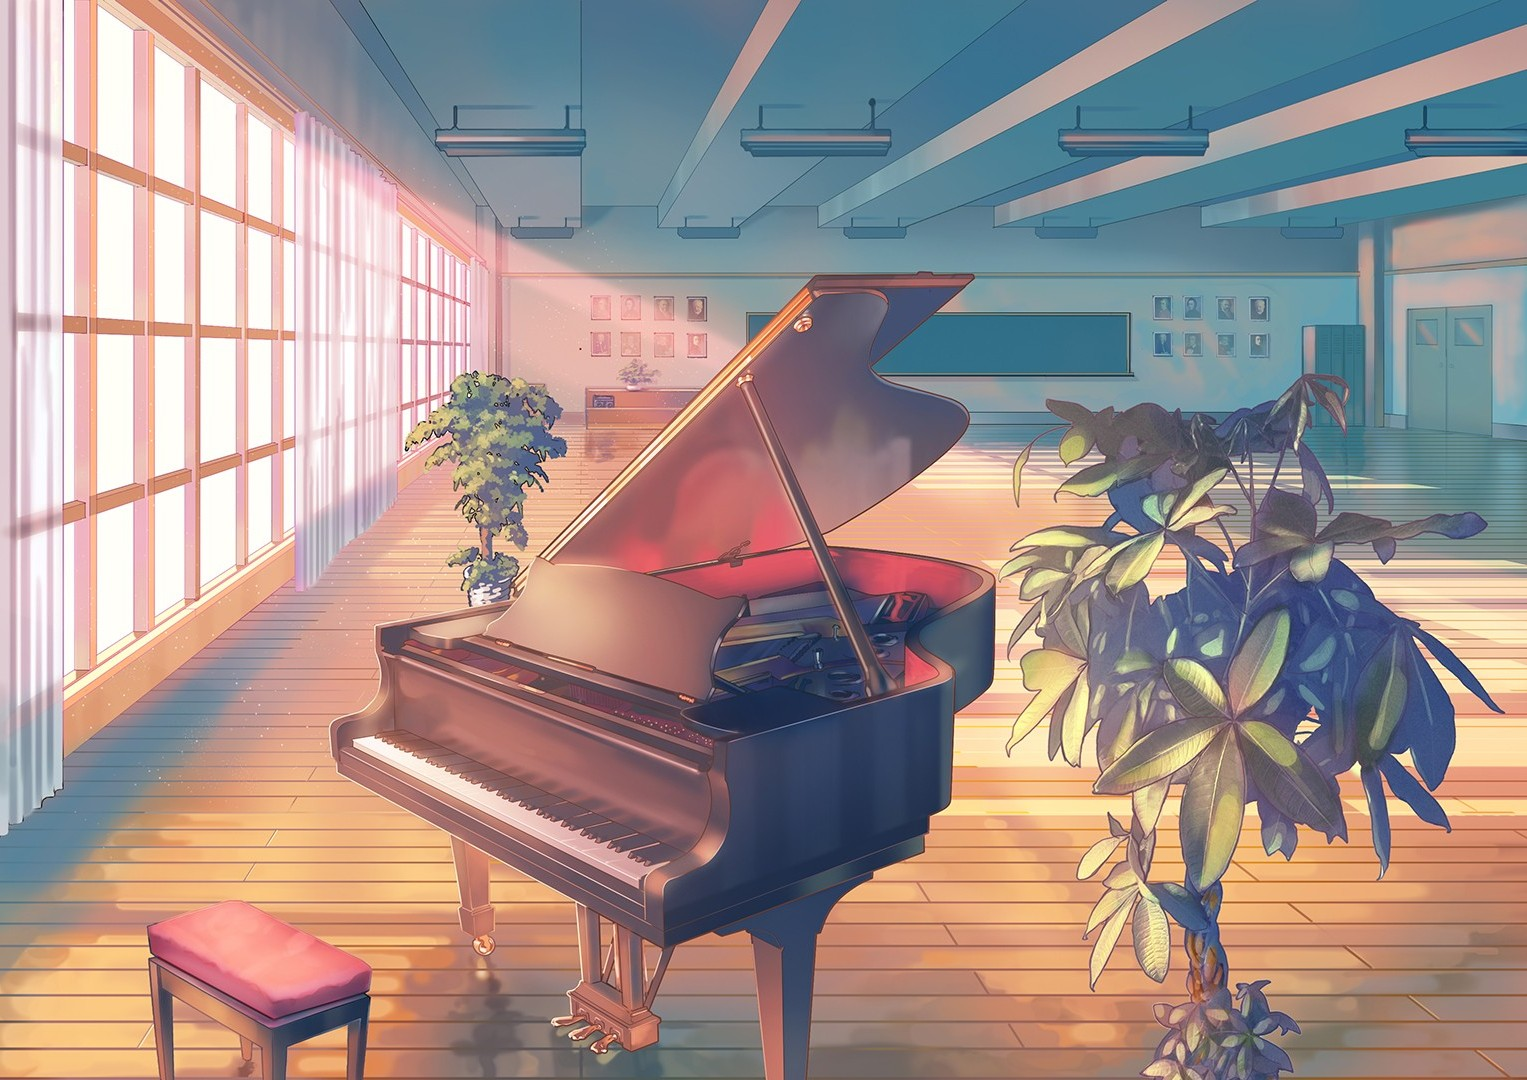 Piano Wallpaper Anime 1527x1080 Wallpaper Teahub Io